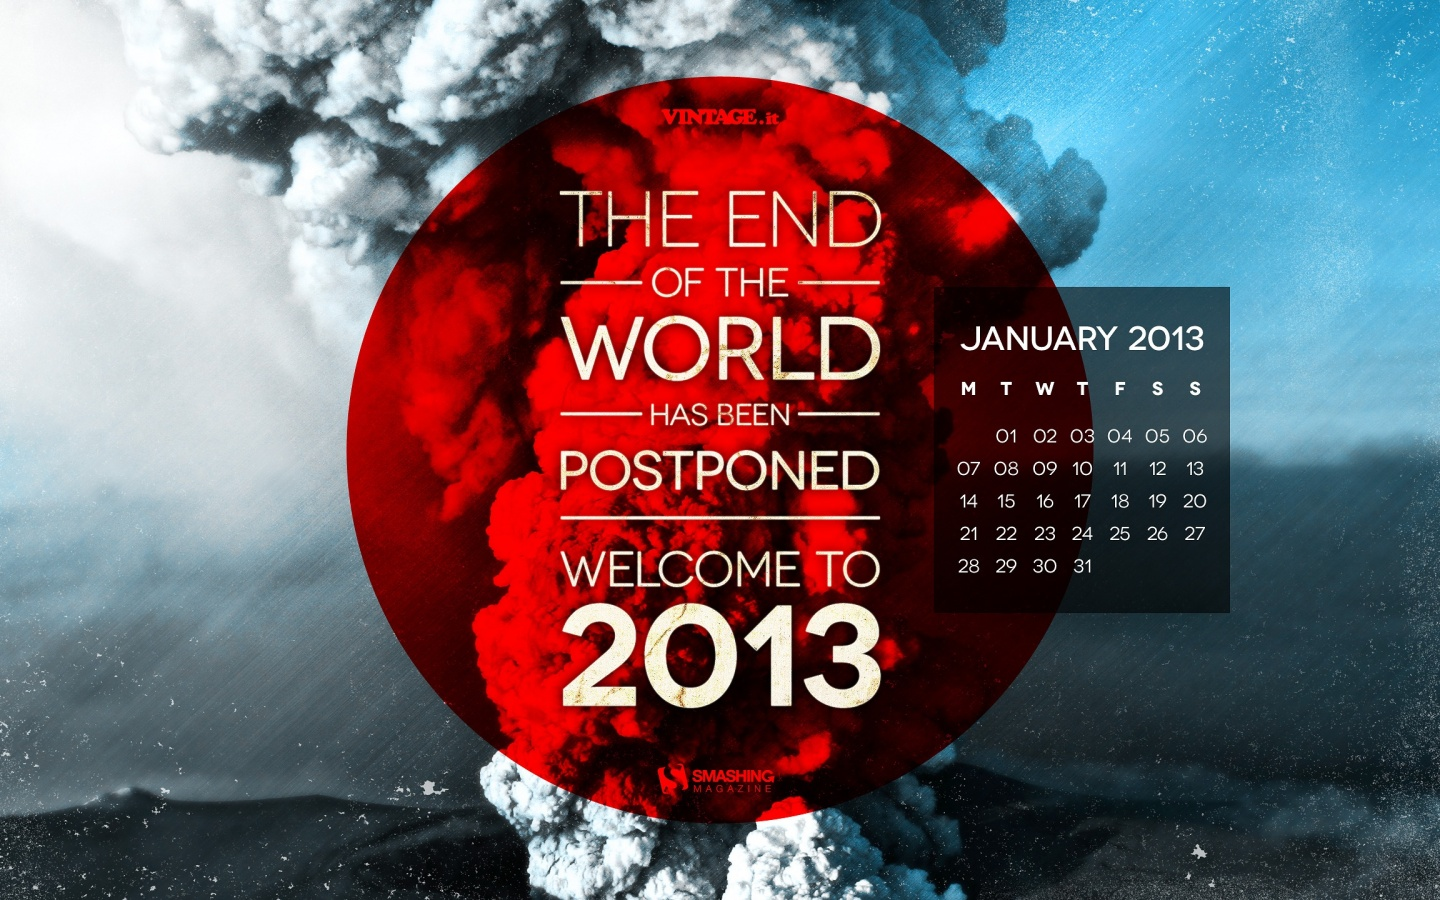 1440x900 End Of The World Postponed